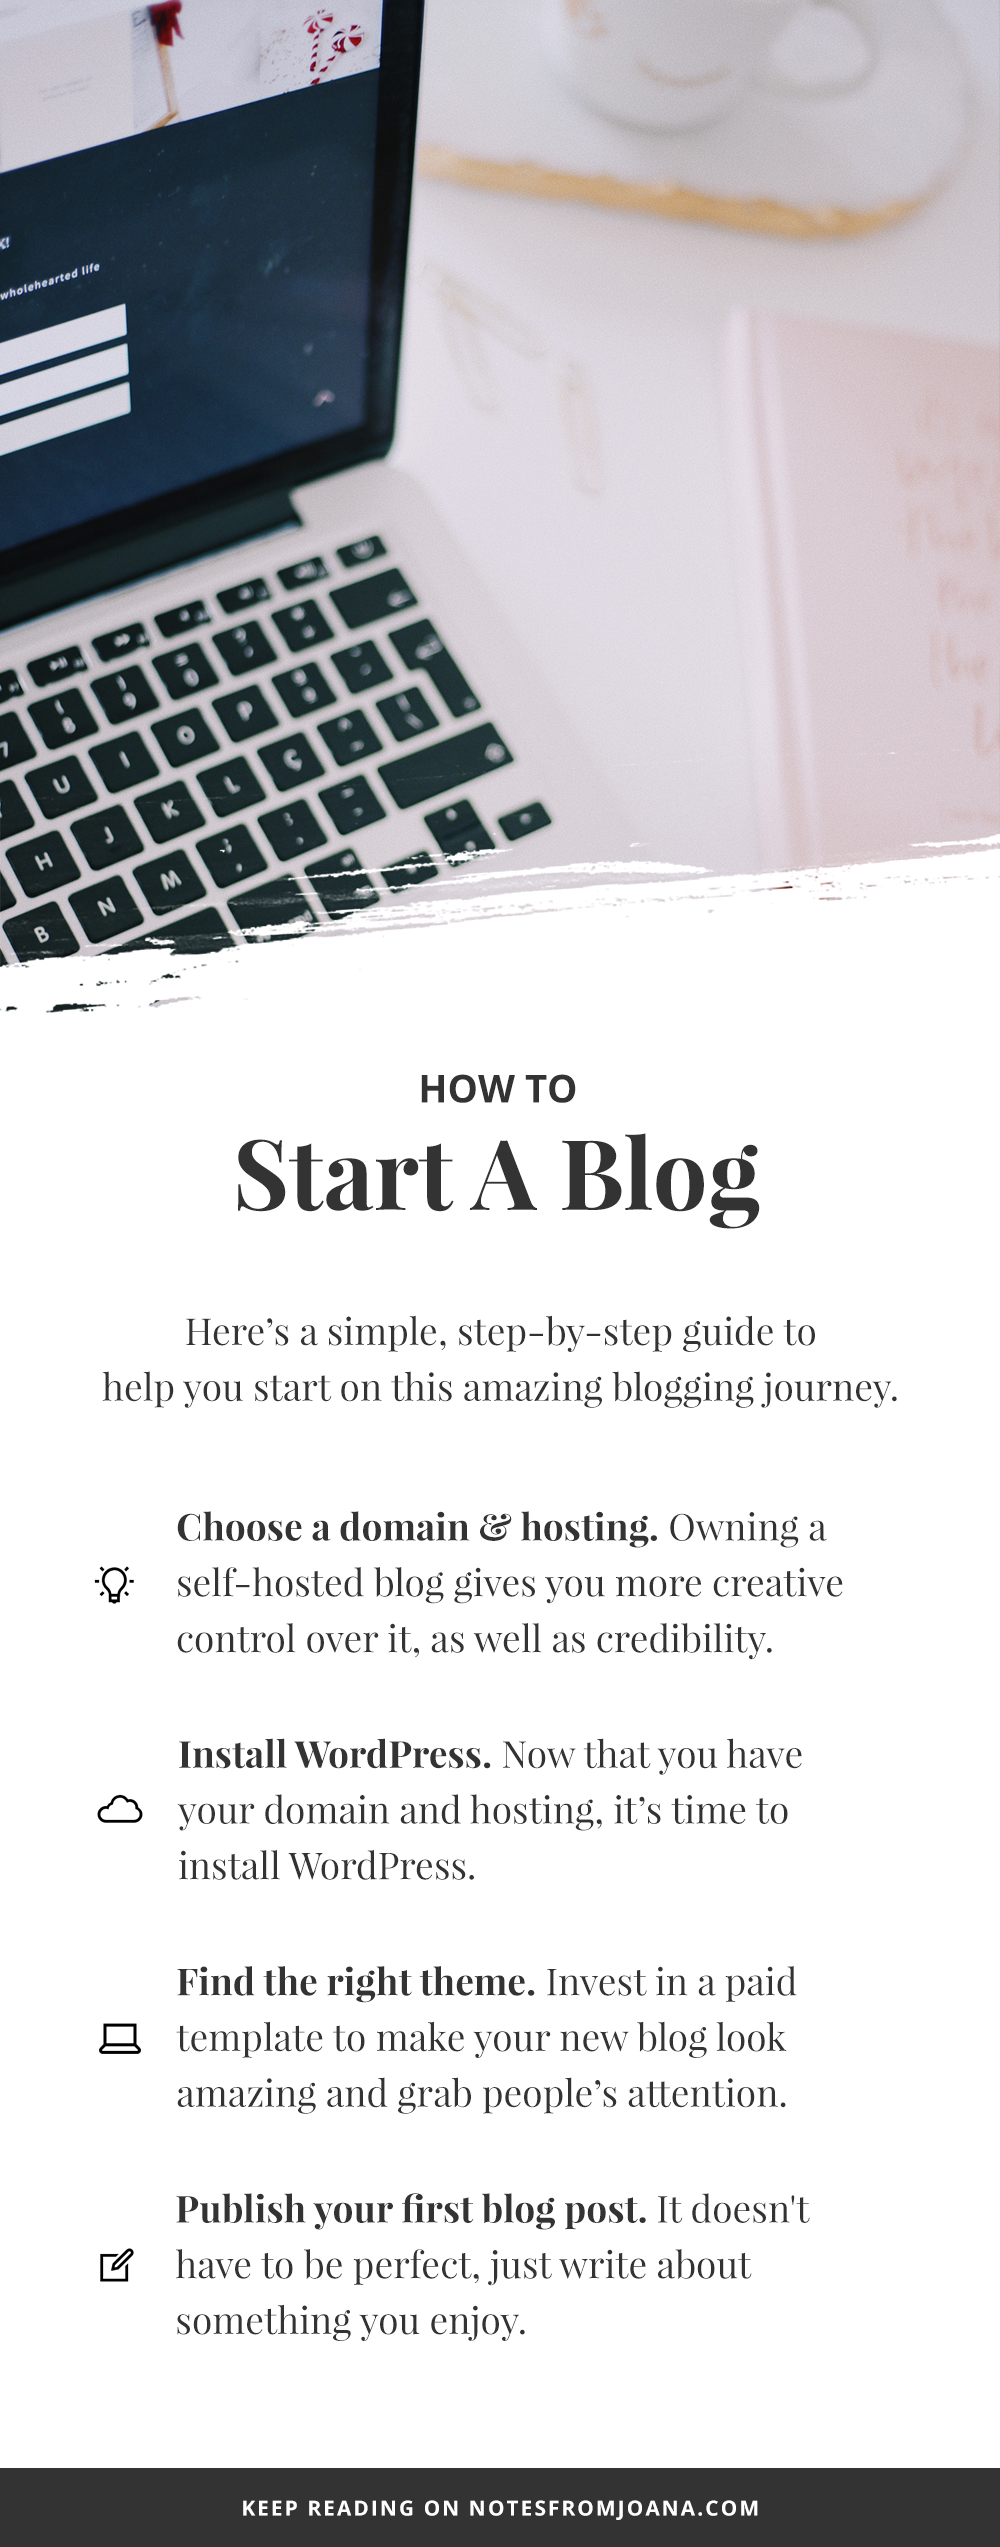 How To Start A Lifestyle Blog In 4 Easy Steps. How To Start A Blog. How To Start A WordPress Blog. Blogging For Beginners. Blogging Advice. How To Start A Self-Hosted Blog. // Notes from Joana